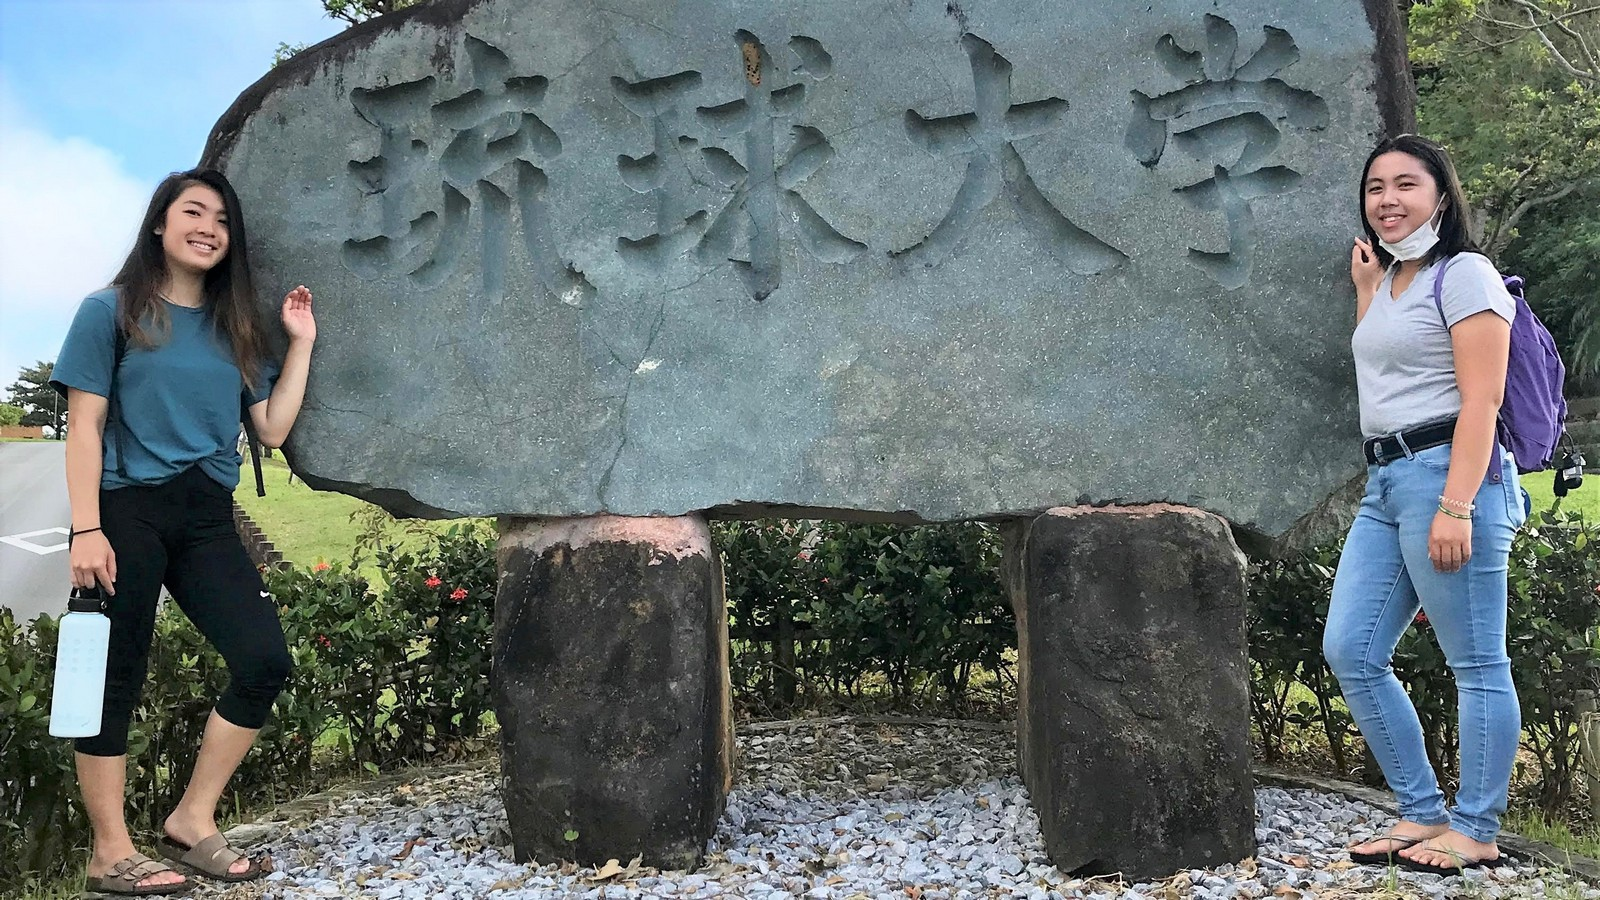 LiAnn Yamamoto stands with friend at stone carving with Japanese lettering.